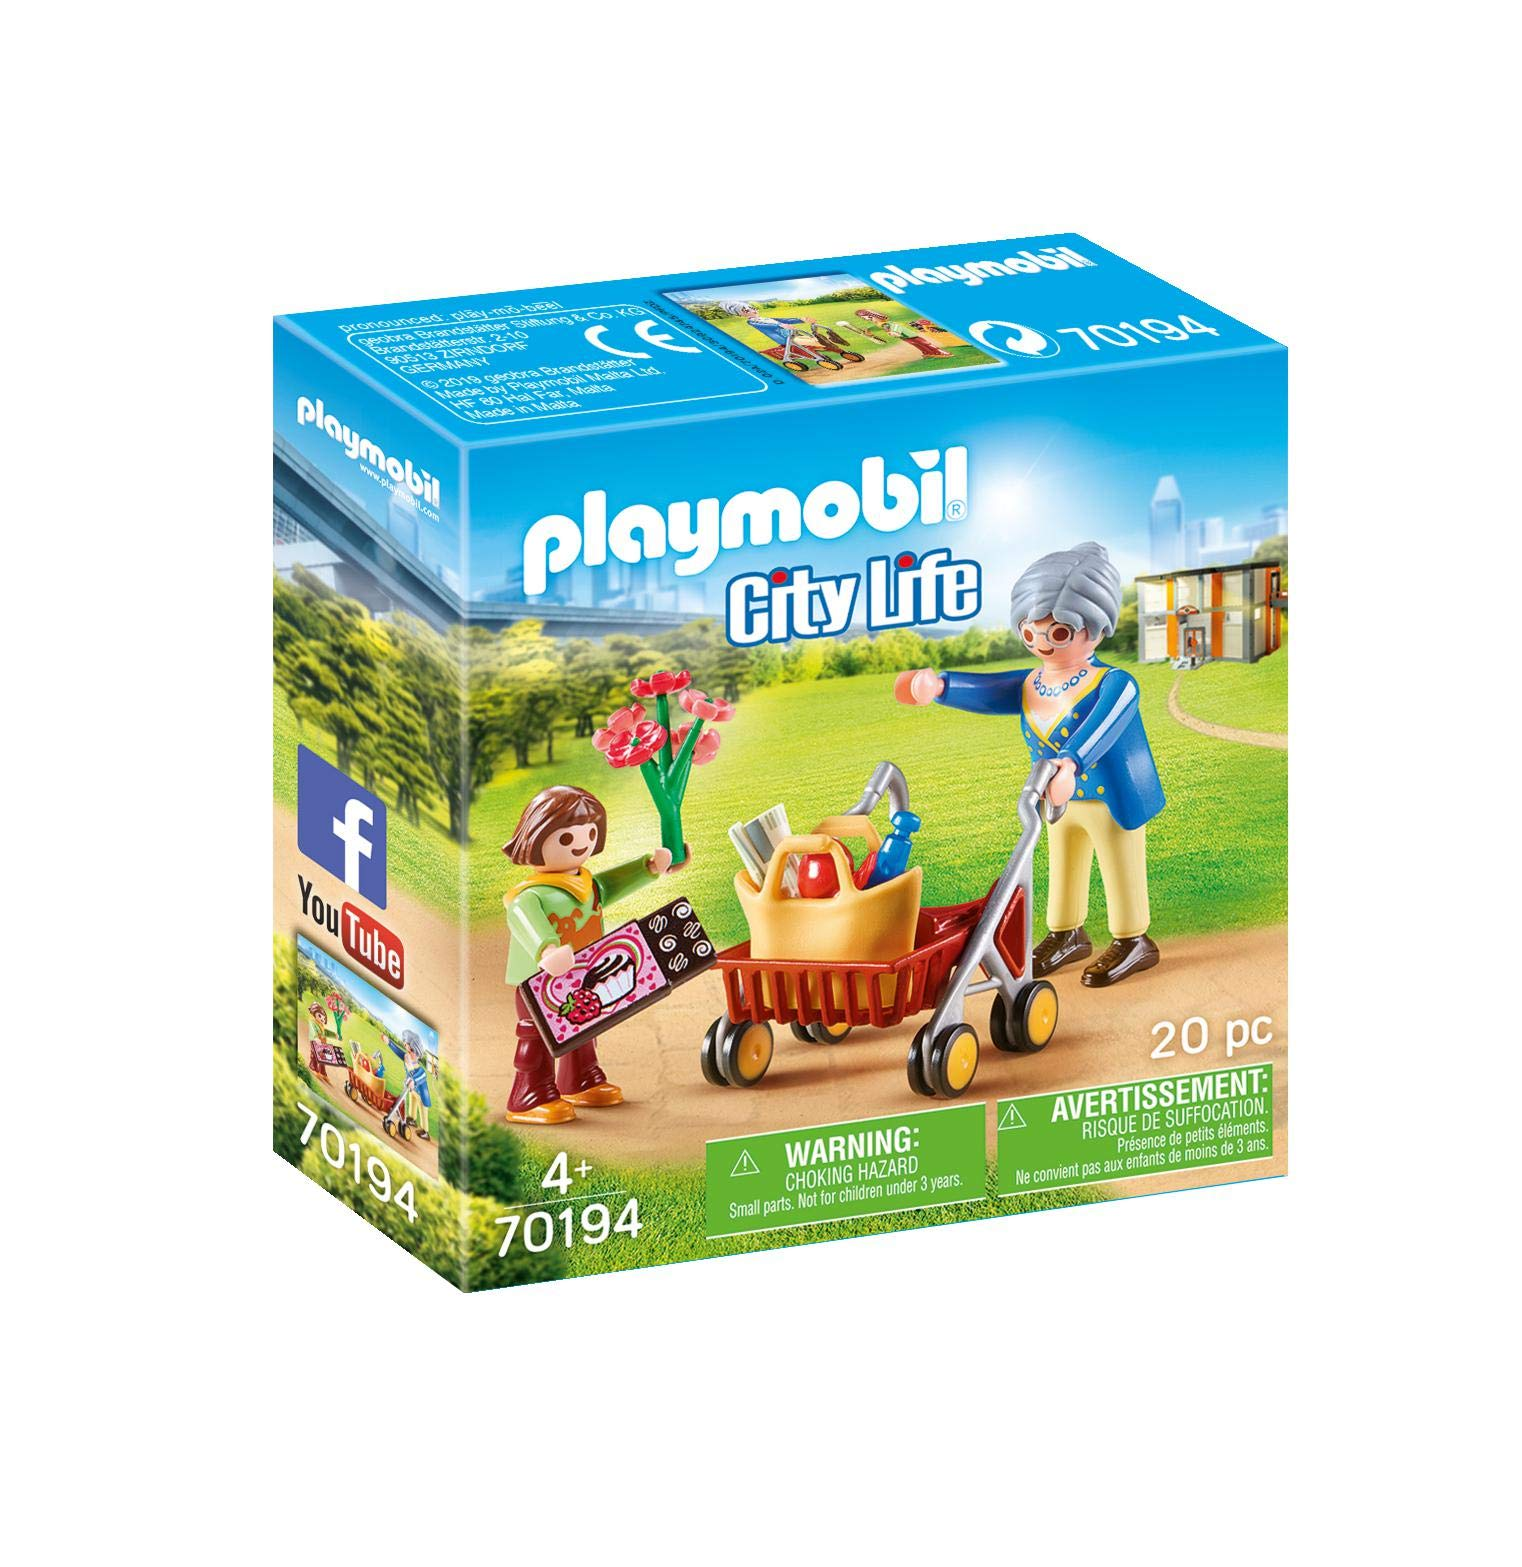 PLAYMOBIL PLAYMOBIL-70194 City Life 70194 Set Sets de Juguetes ...